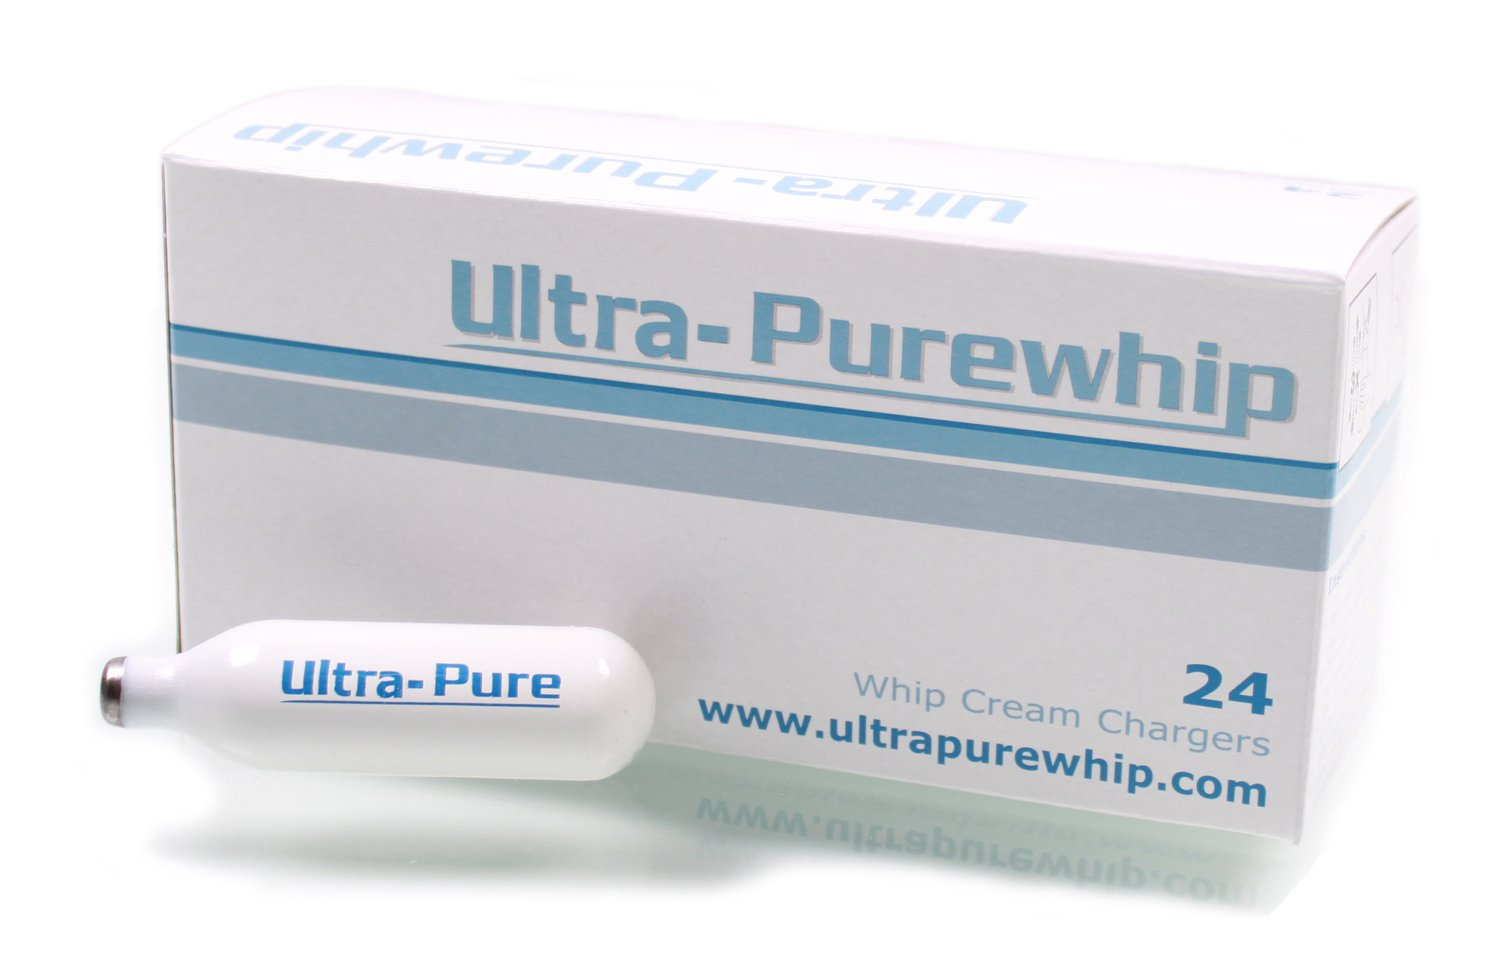 Creamright Ultra-Pure Whip Cream Chargers, Case of 120 Creamright Products WCC-MN-PW-UL-120